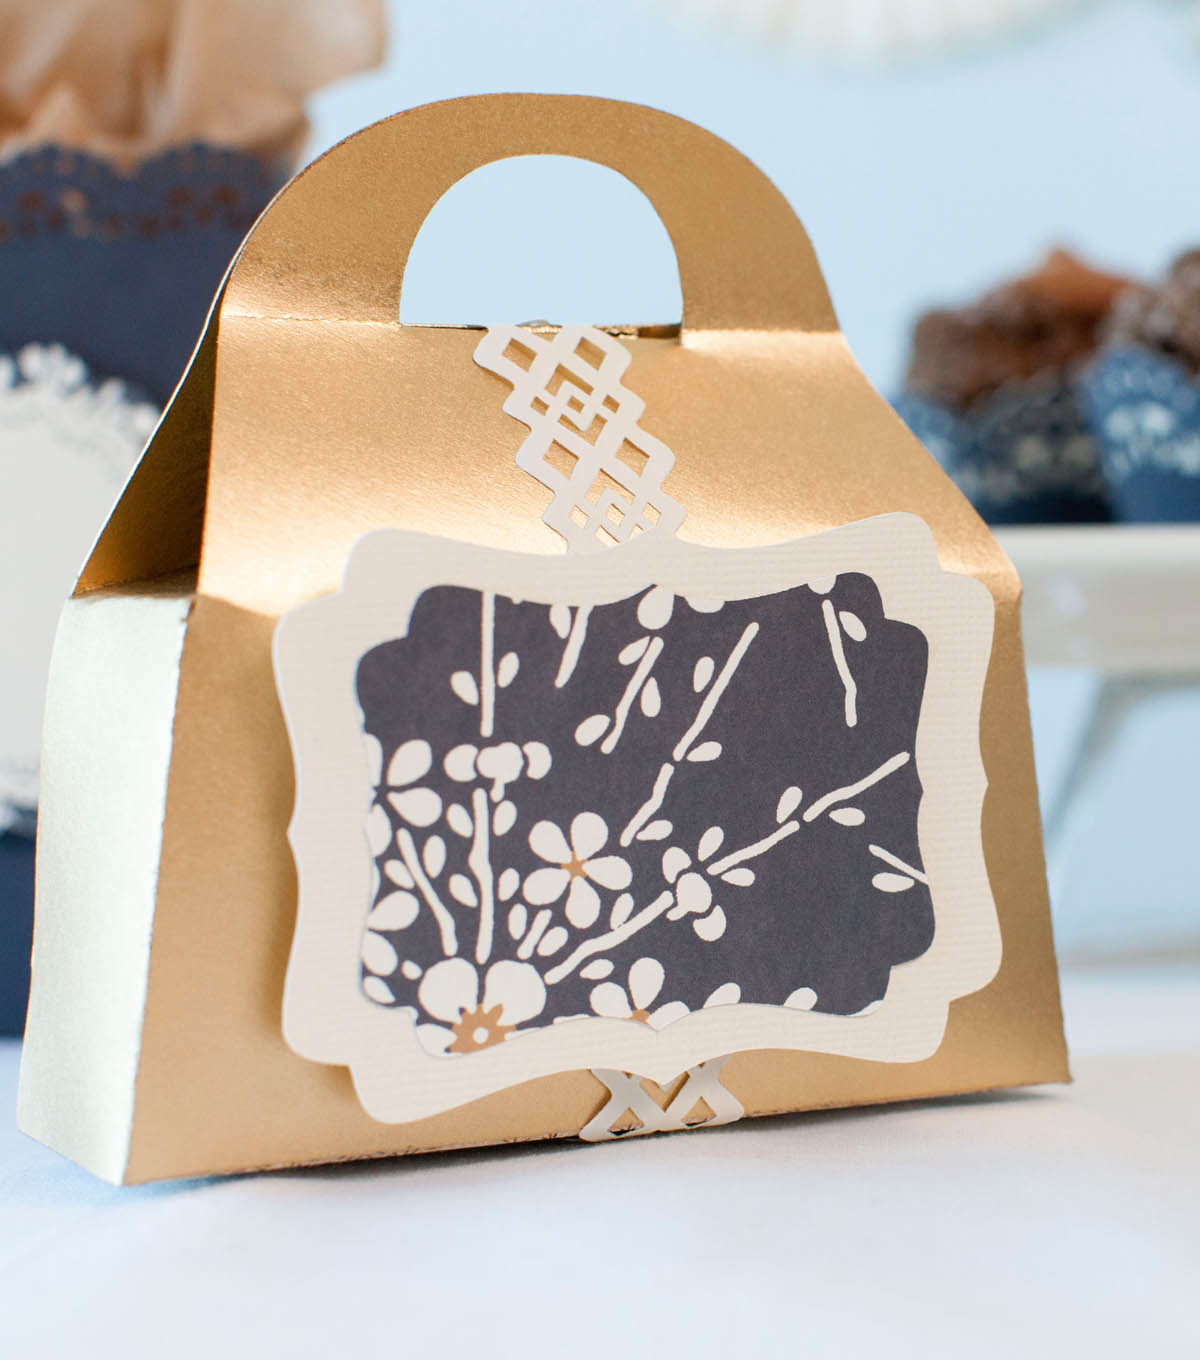 Splendid Soiree Lace Party Box